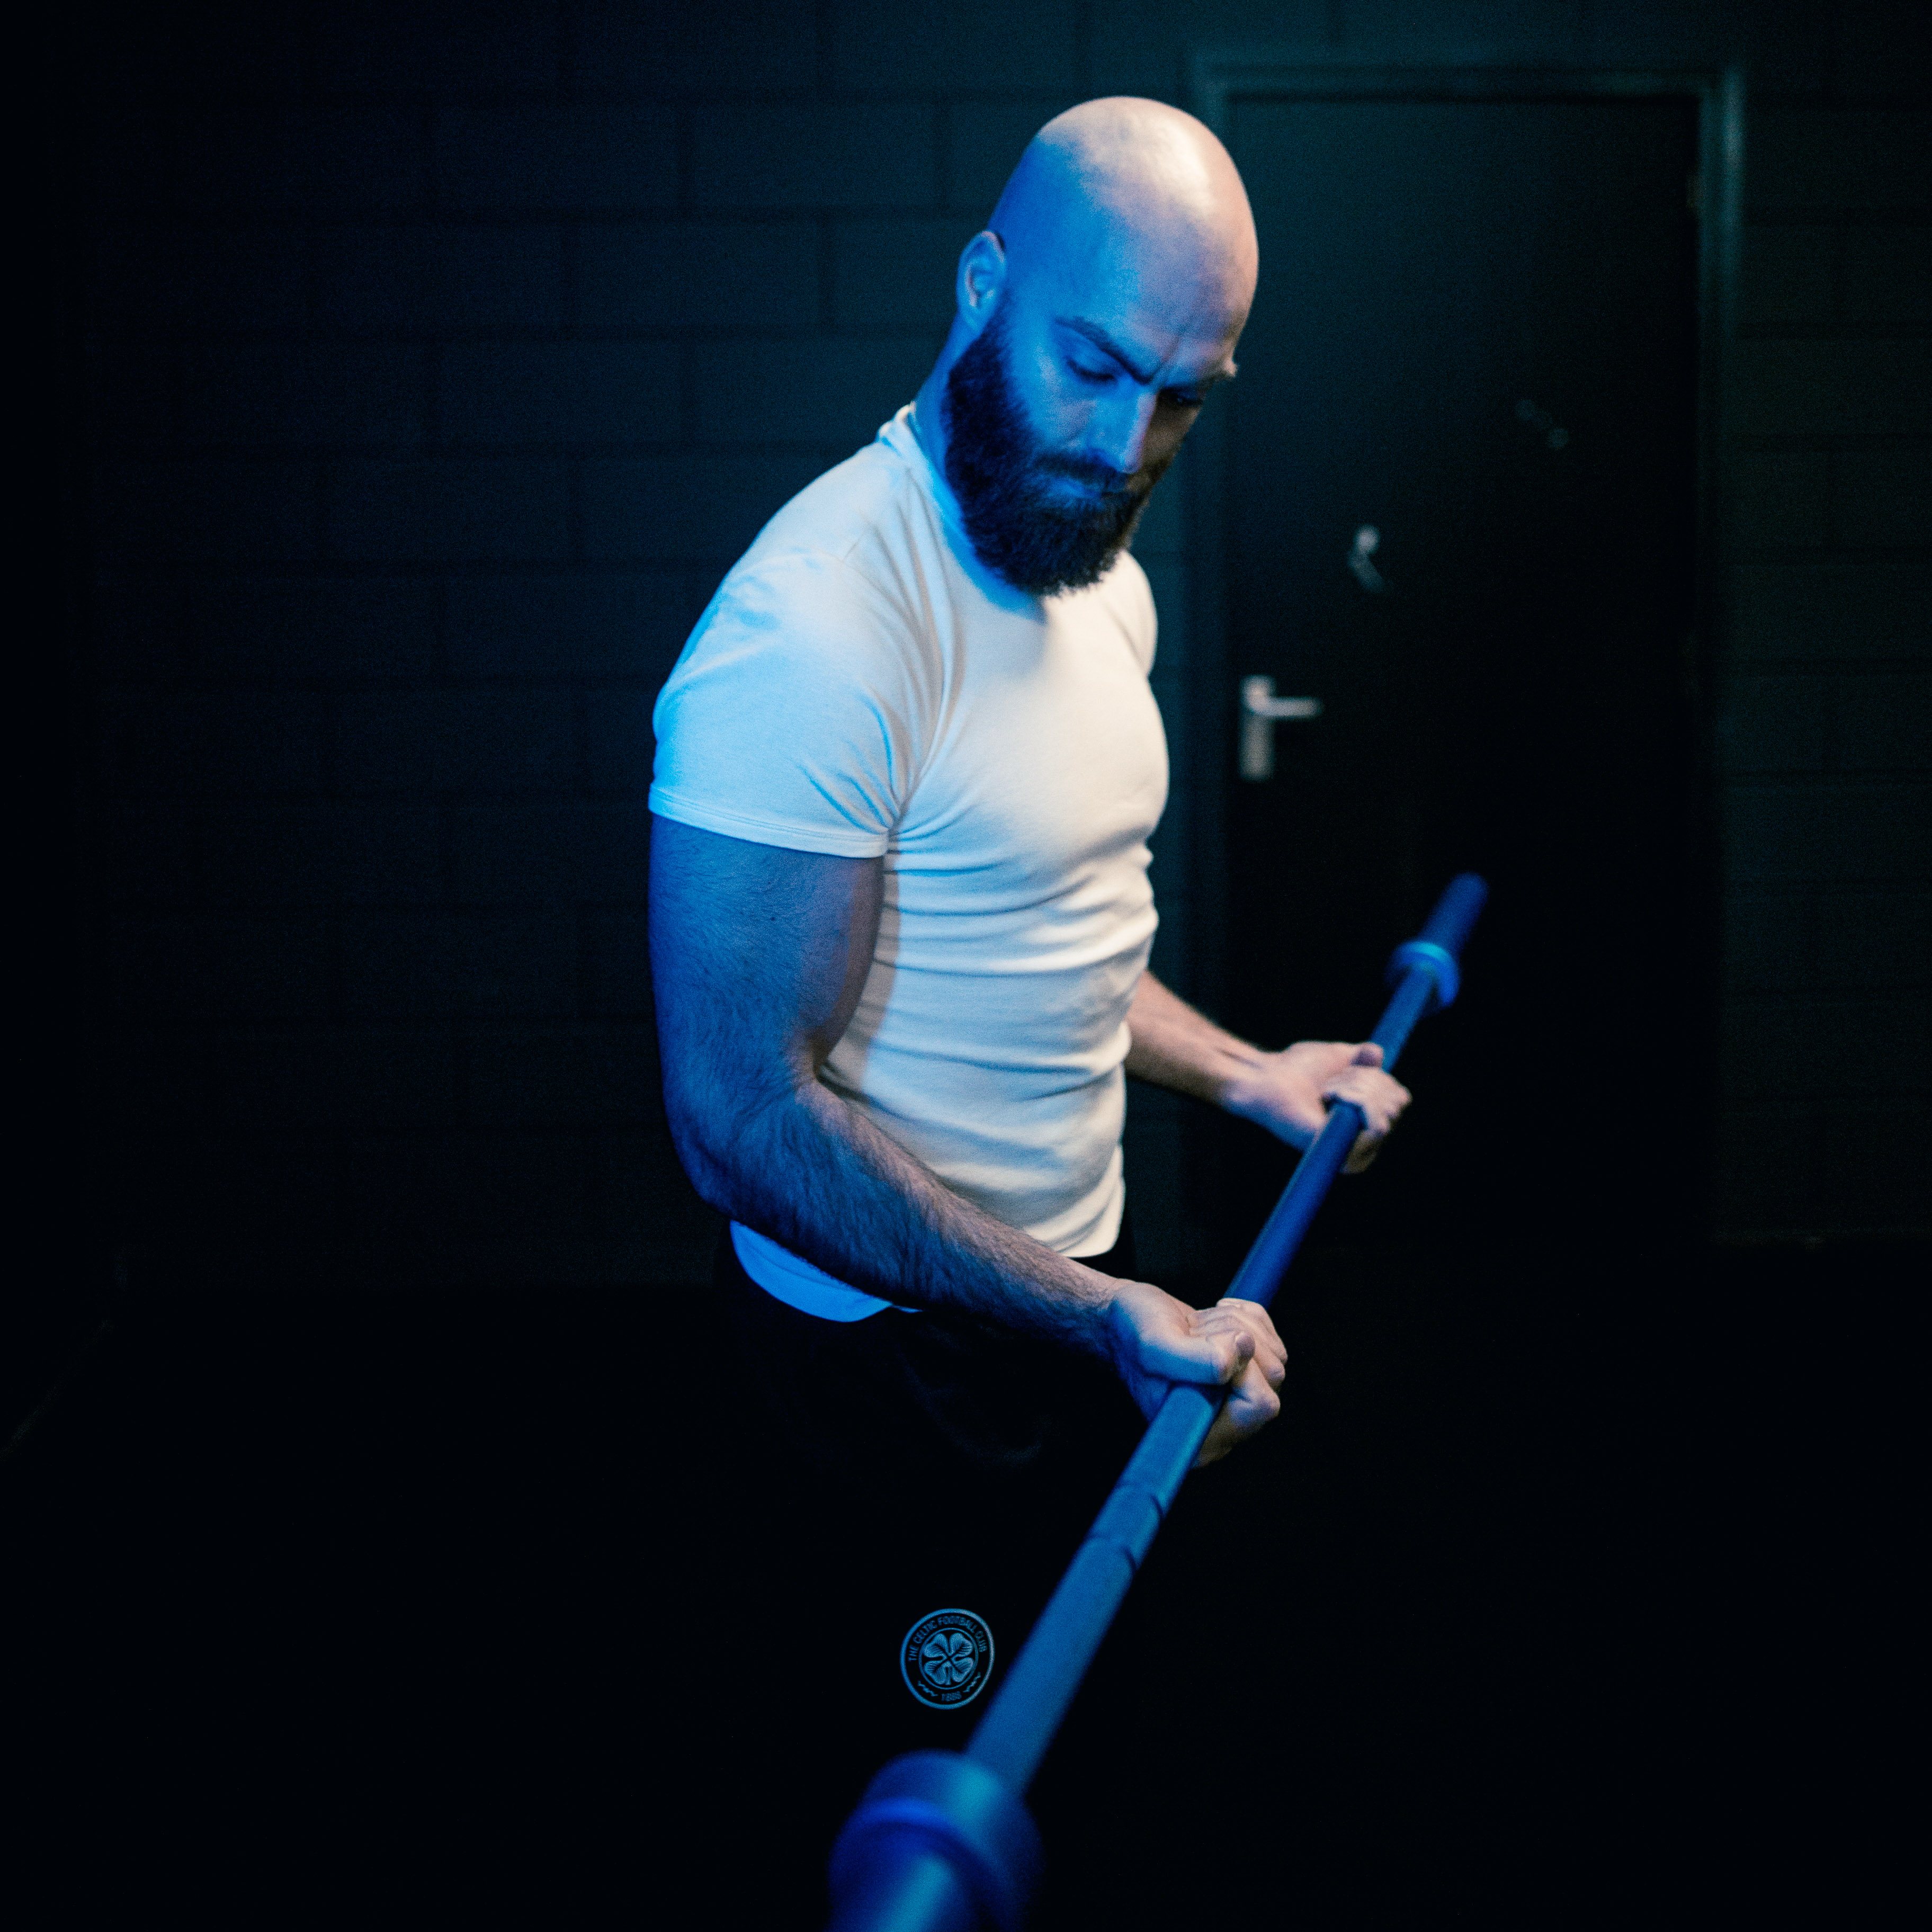 Blue Barbell action